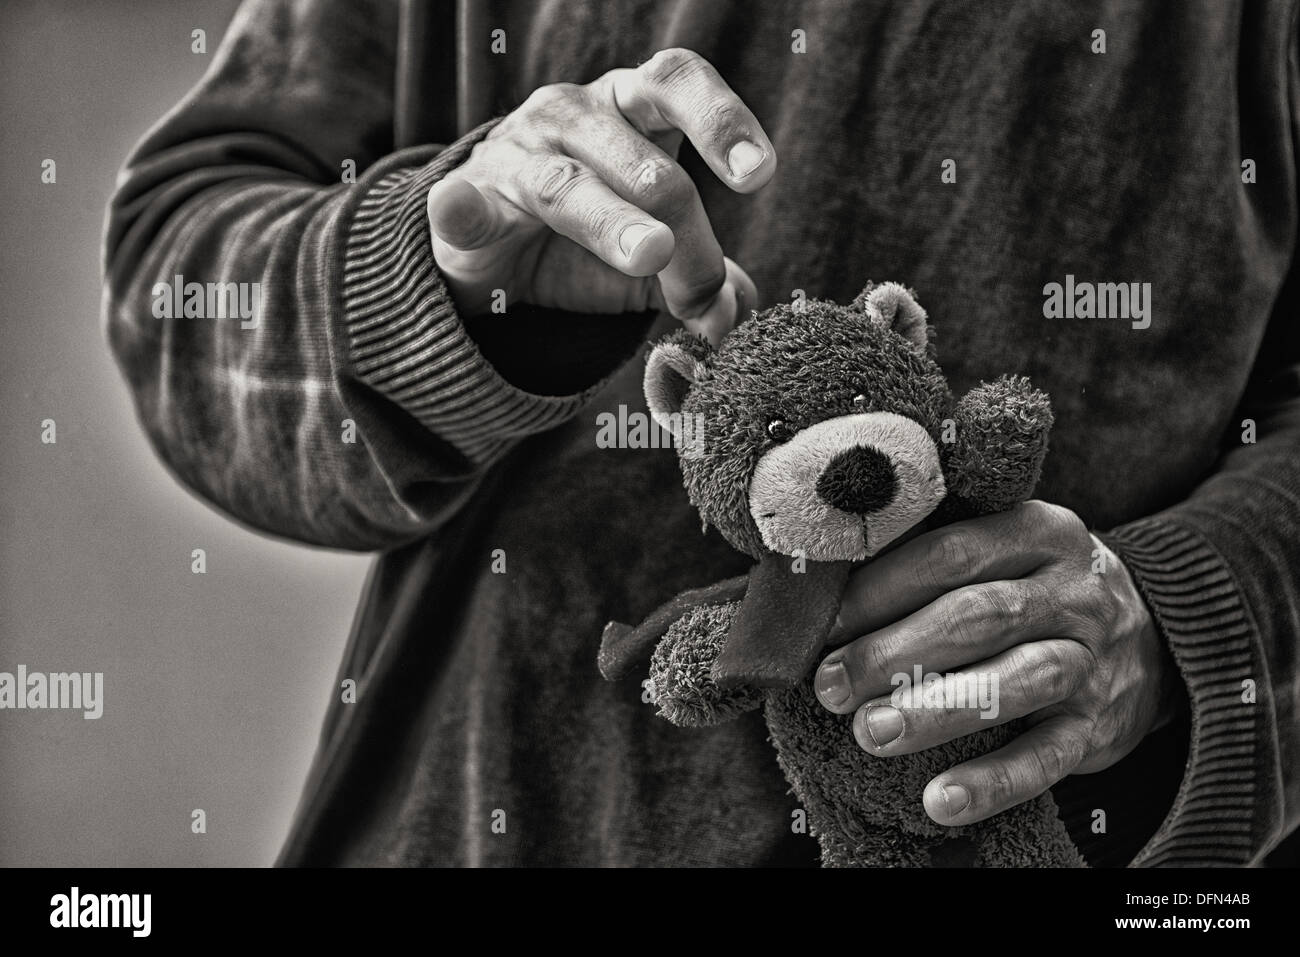 Man whacking teddy bear, child abuse concept - Stock Image